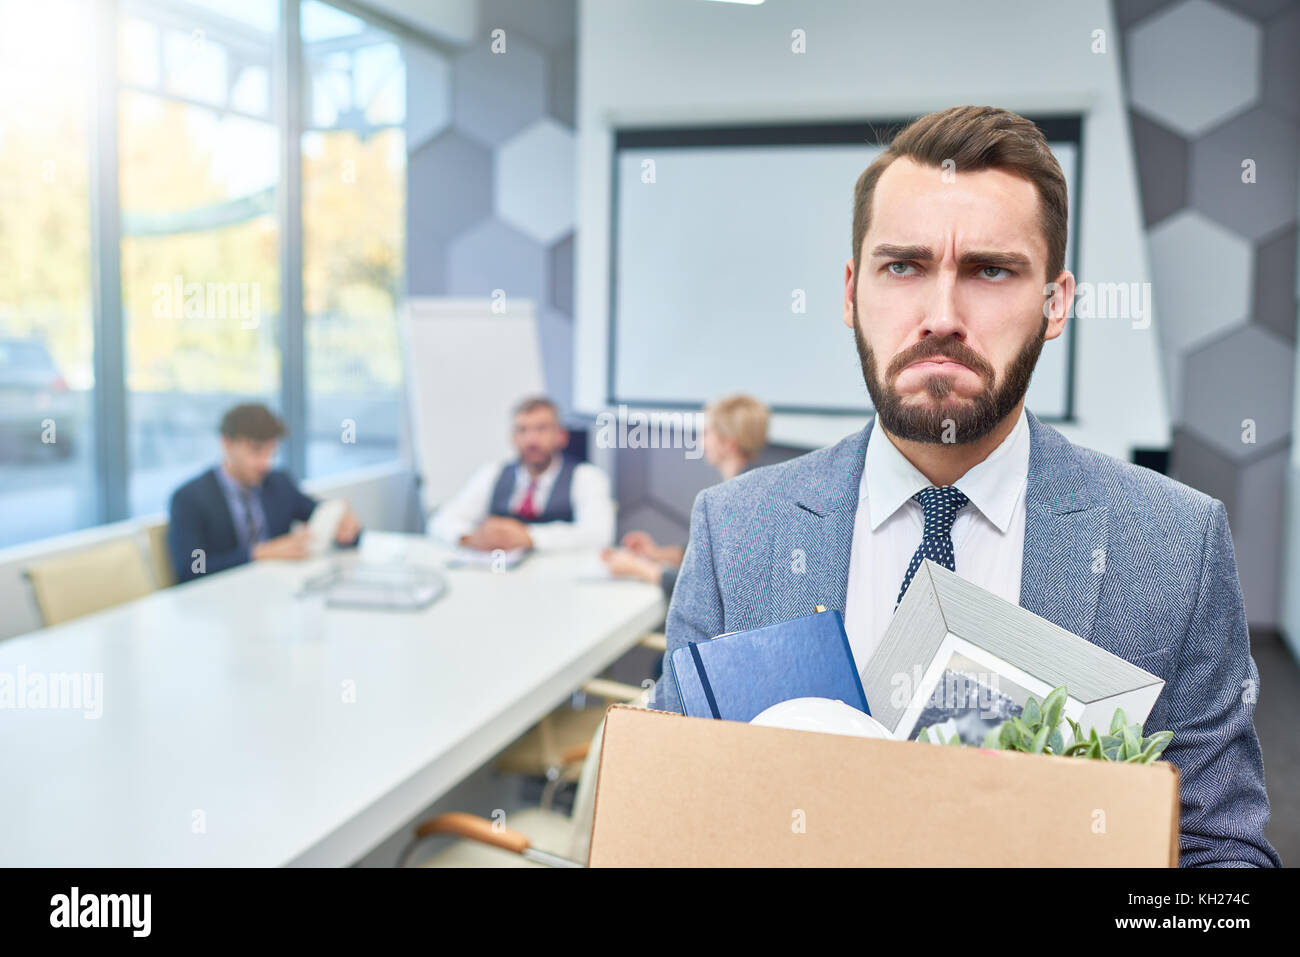 Portrait of sad bearded businessman holding box of personal belongings being fired from work in company, copy space - Stock Image